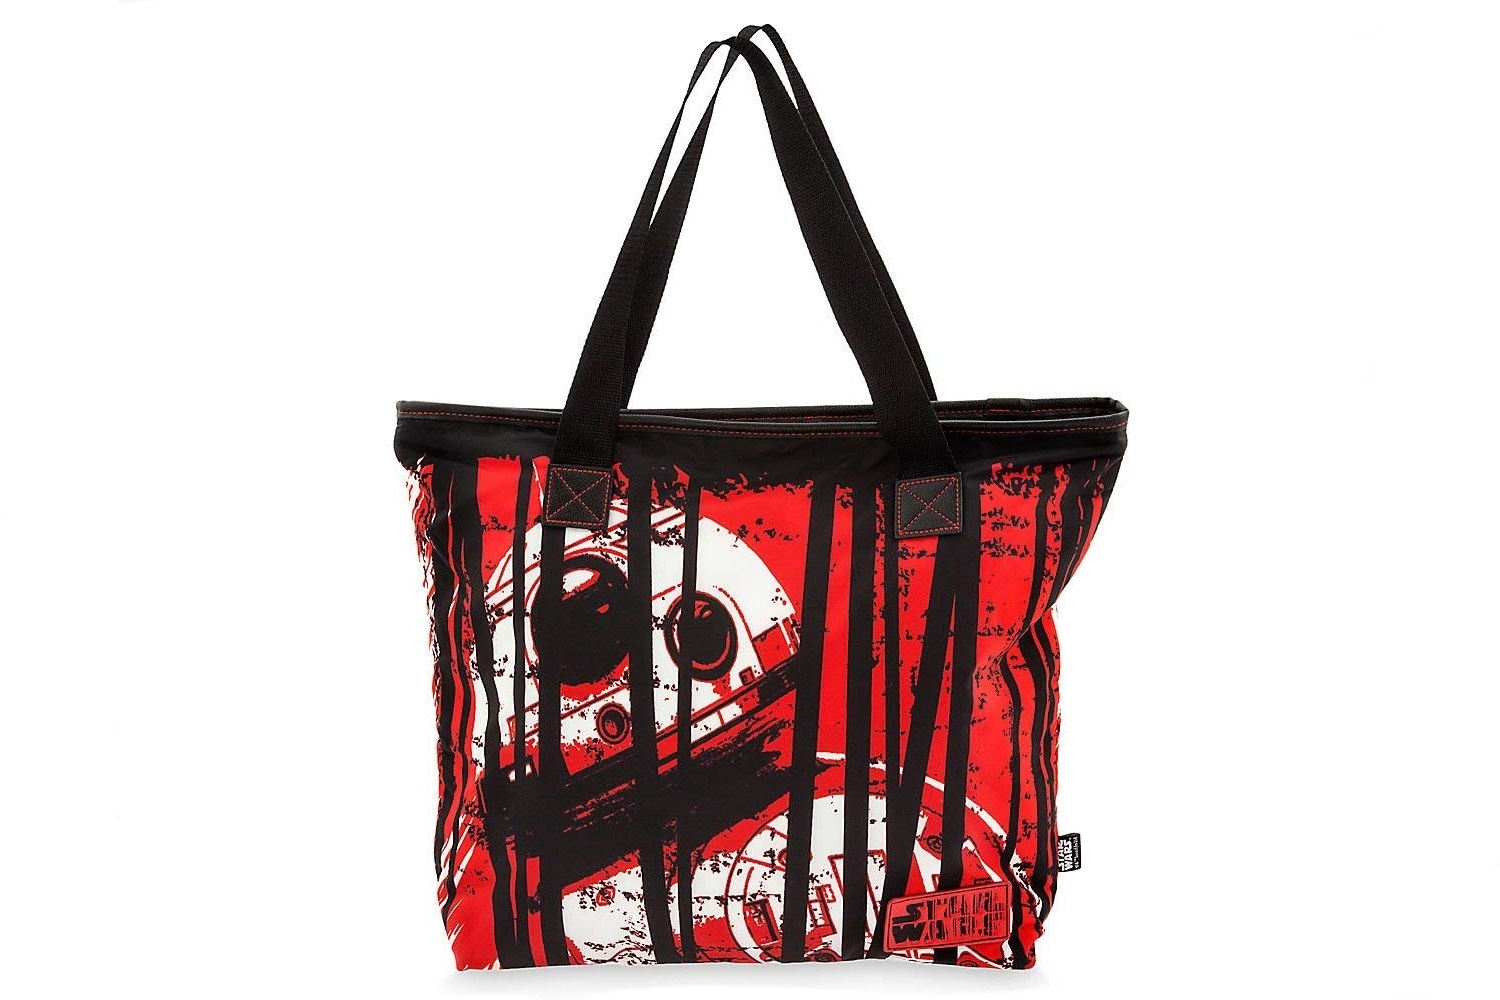 Star Wars TLJ BB-8 Tote Bag on Amazon